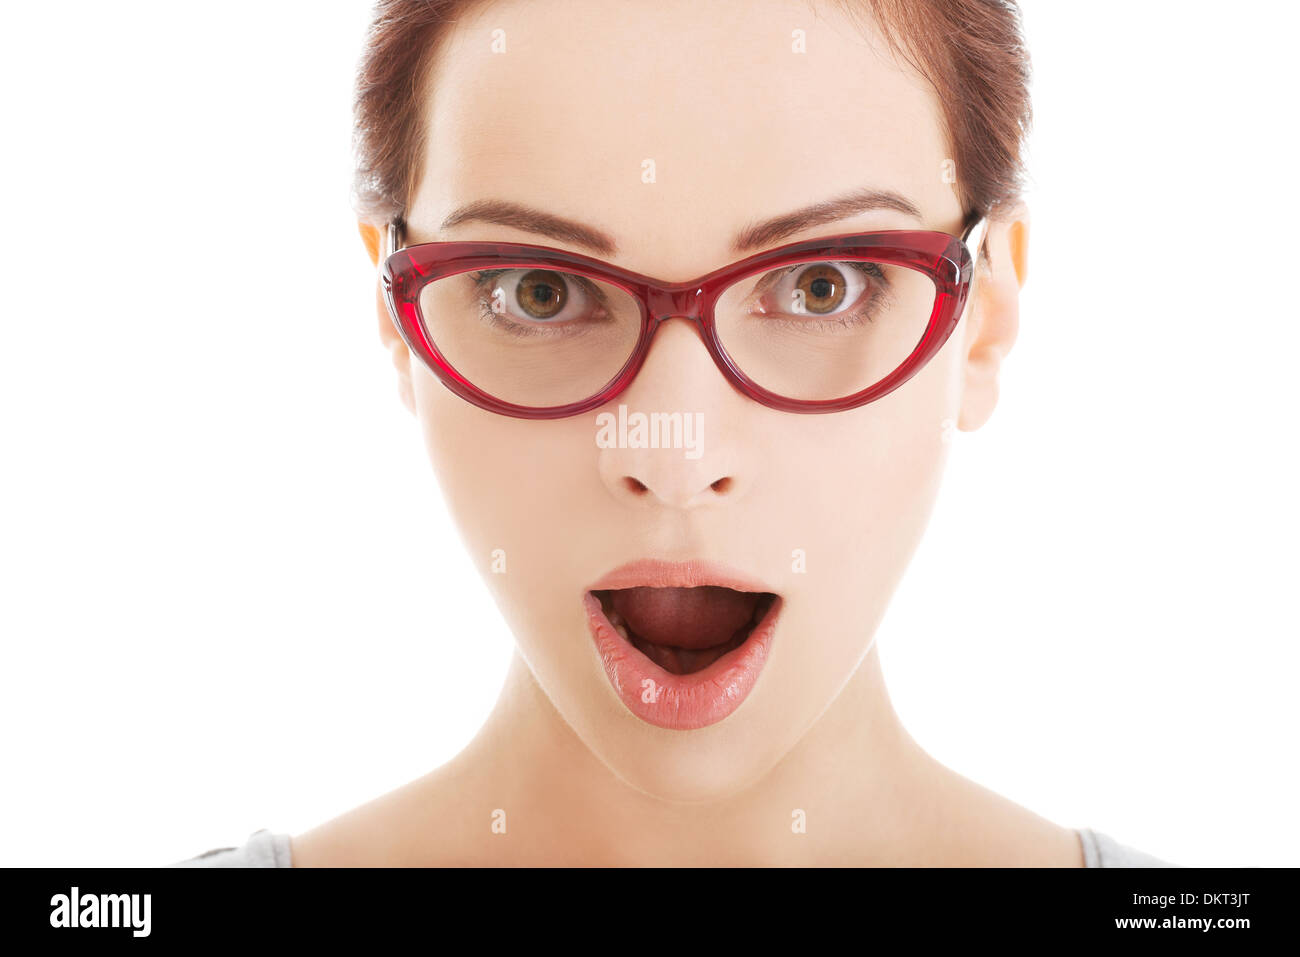 da8e8cceac5 Emotions Astonishment Surprised Young Woman Stock Photos   Emotions ...